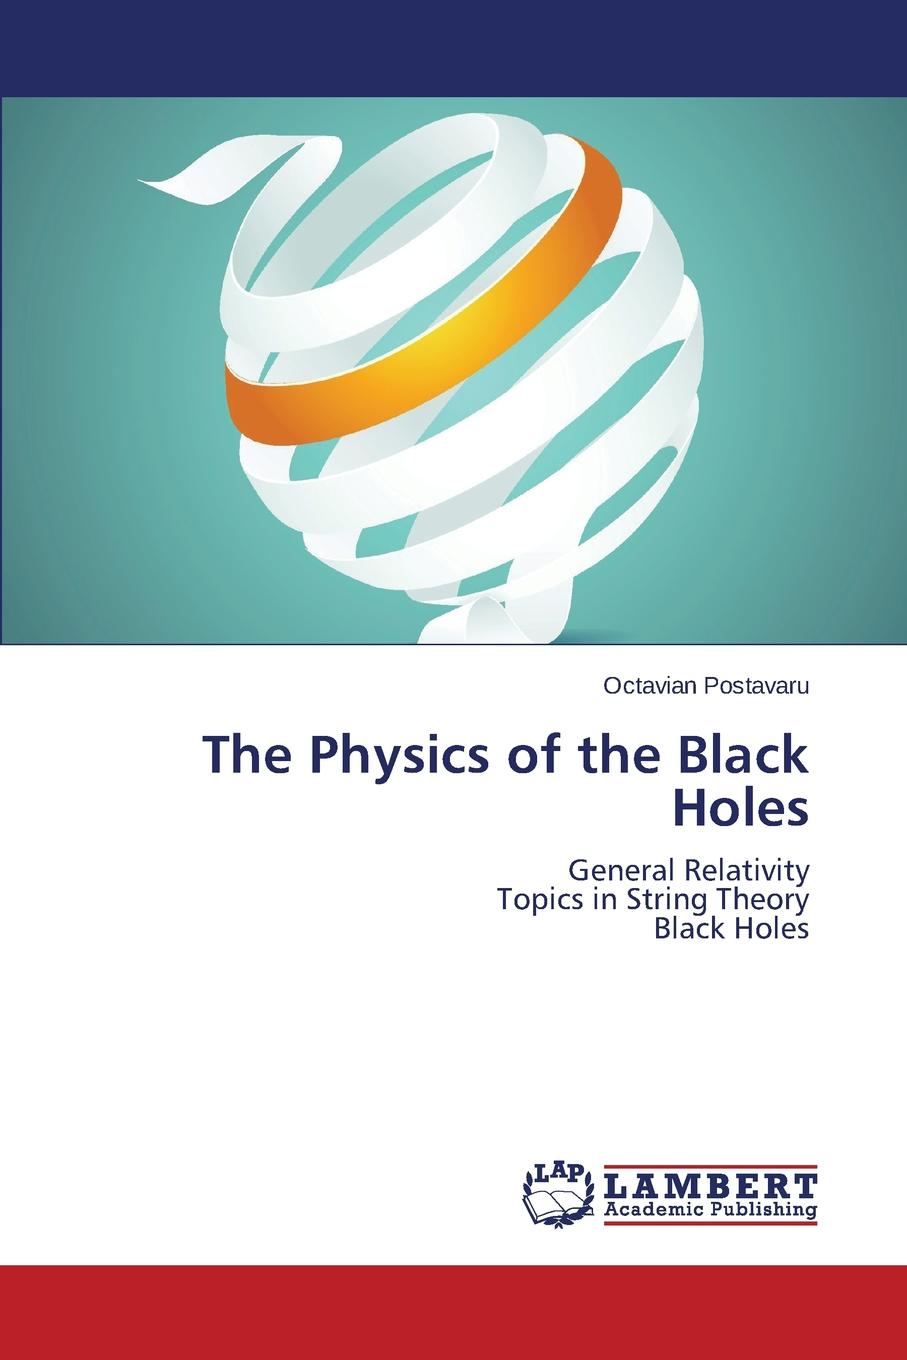 Postavaru Octavian The Physics of the Black Holes martin bojowald the universe a view from classical and quantum gravity isbn 9783527667697